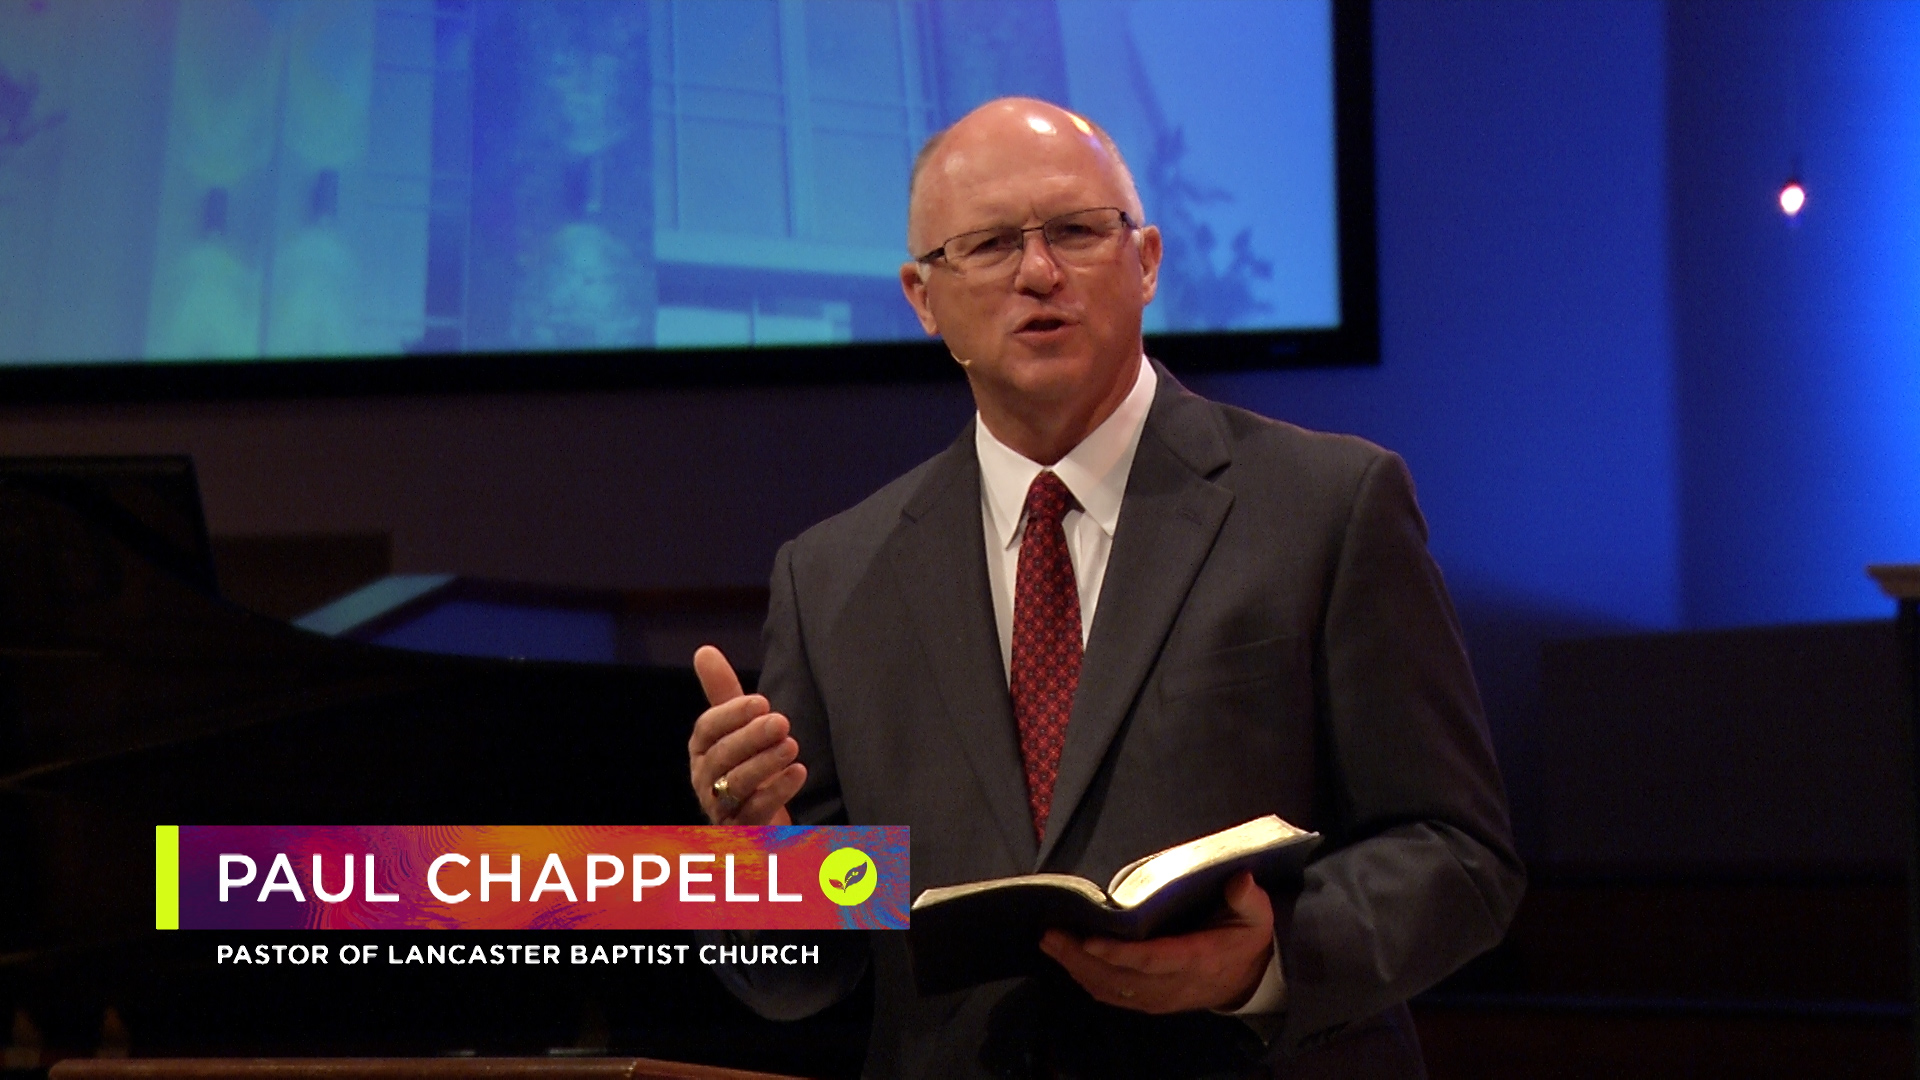 Pastor Paul Chappell: Only Jesus Can Forgive